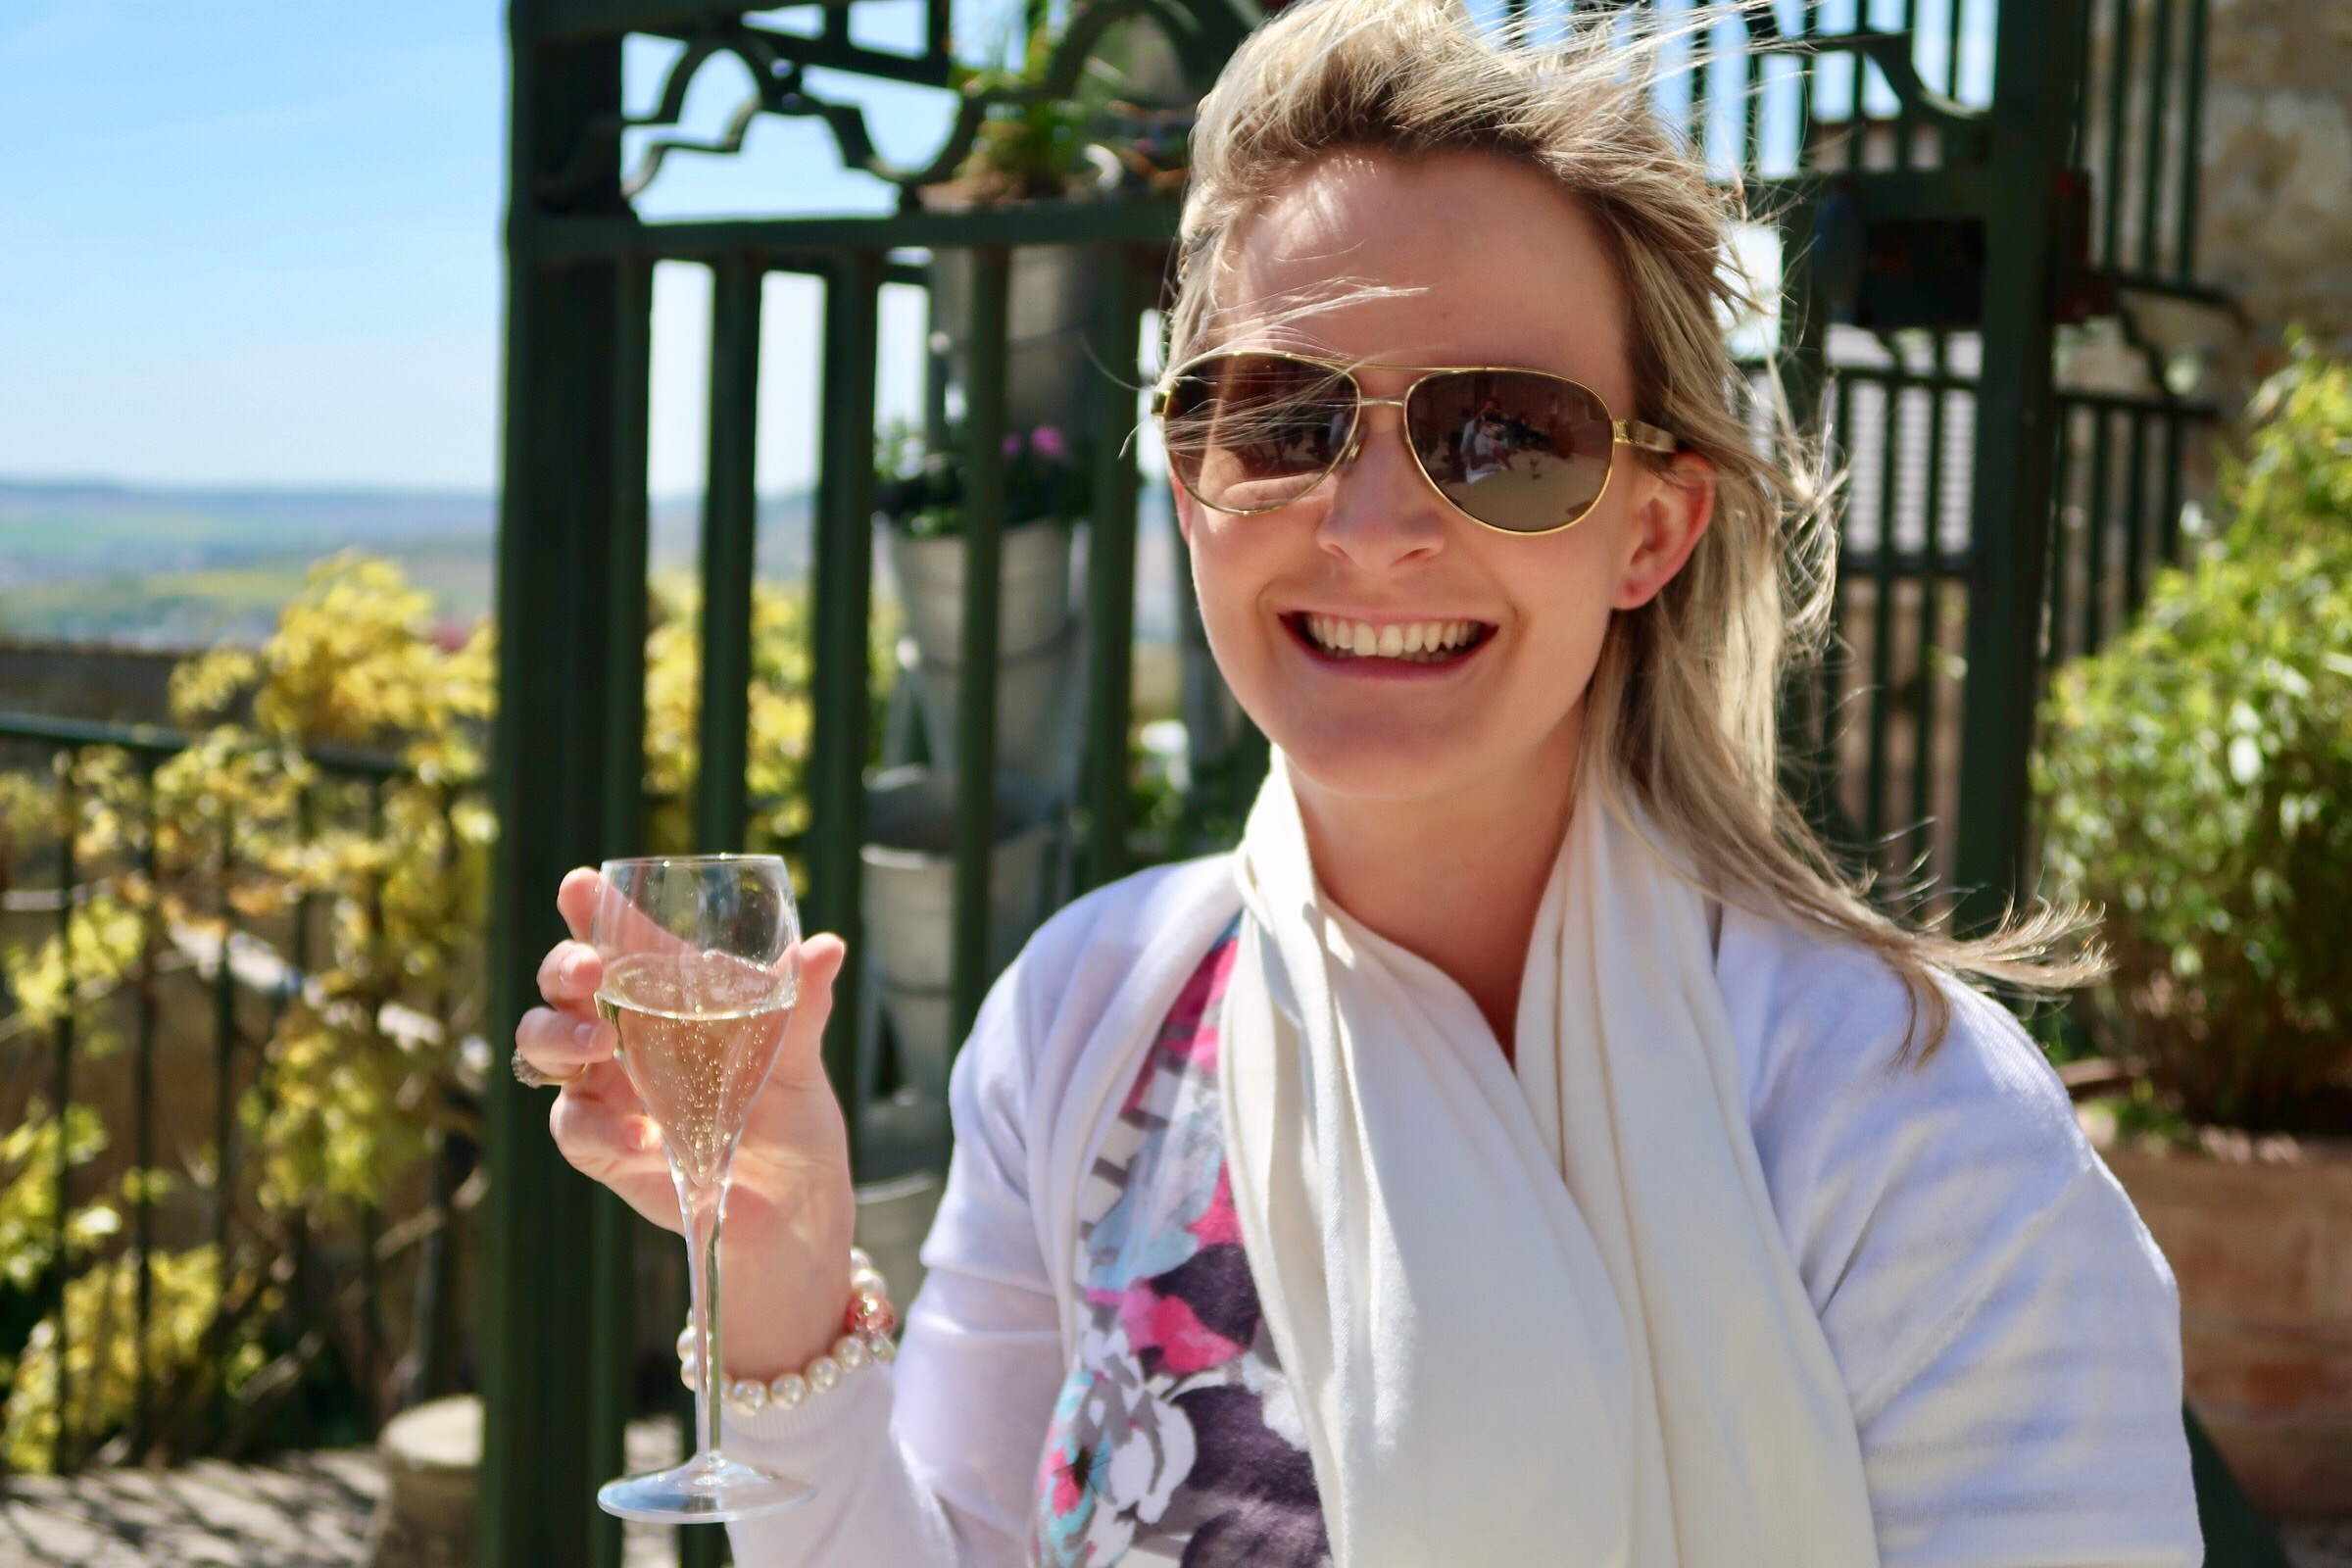 My happy face in my happy place - Hautvillers, Champagne region